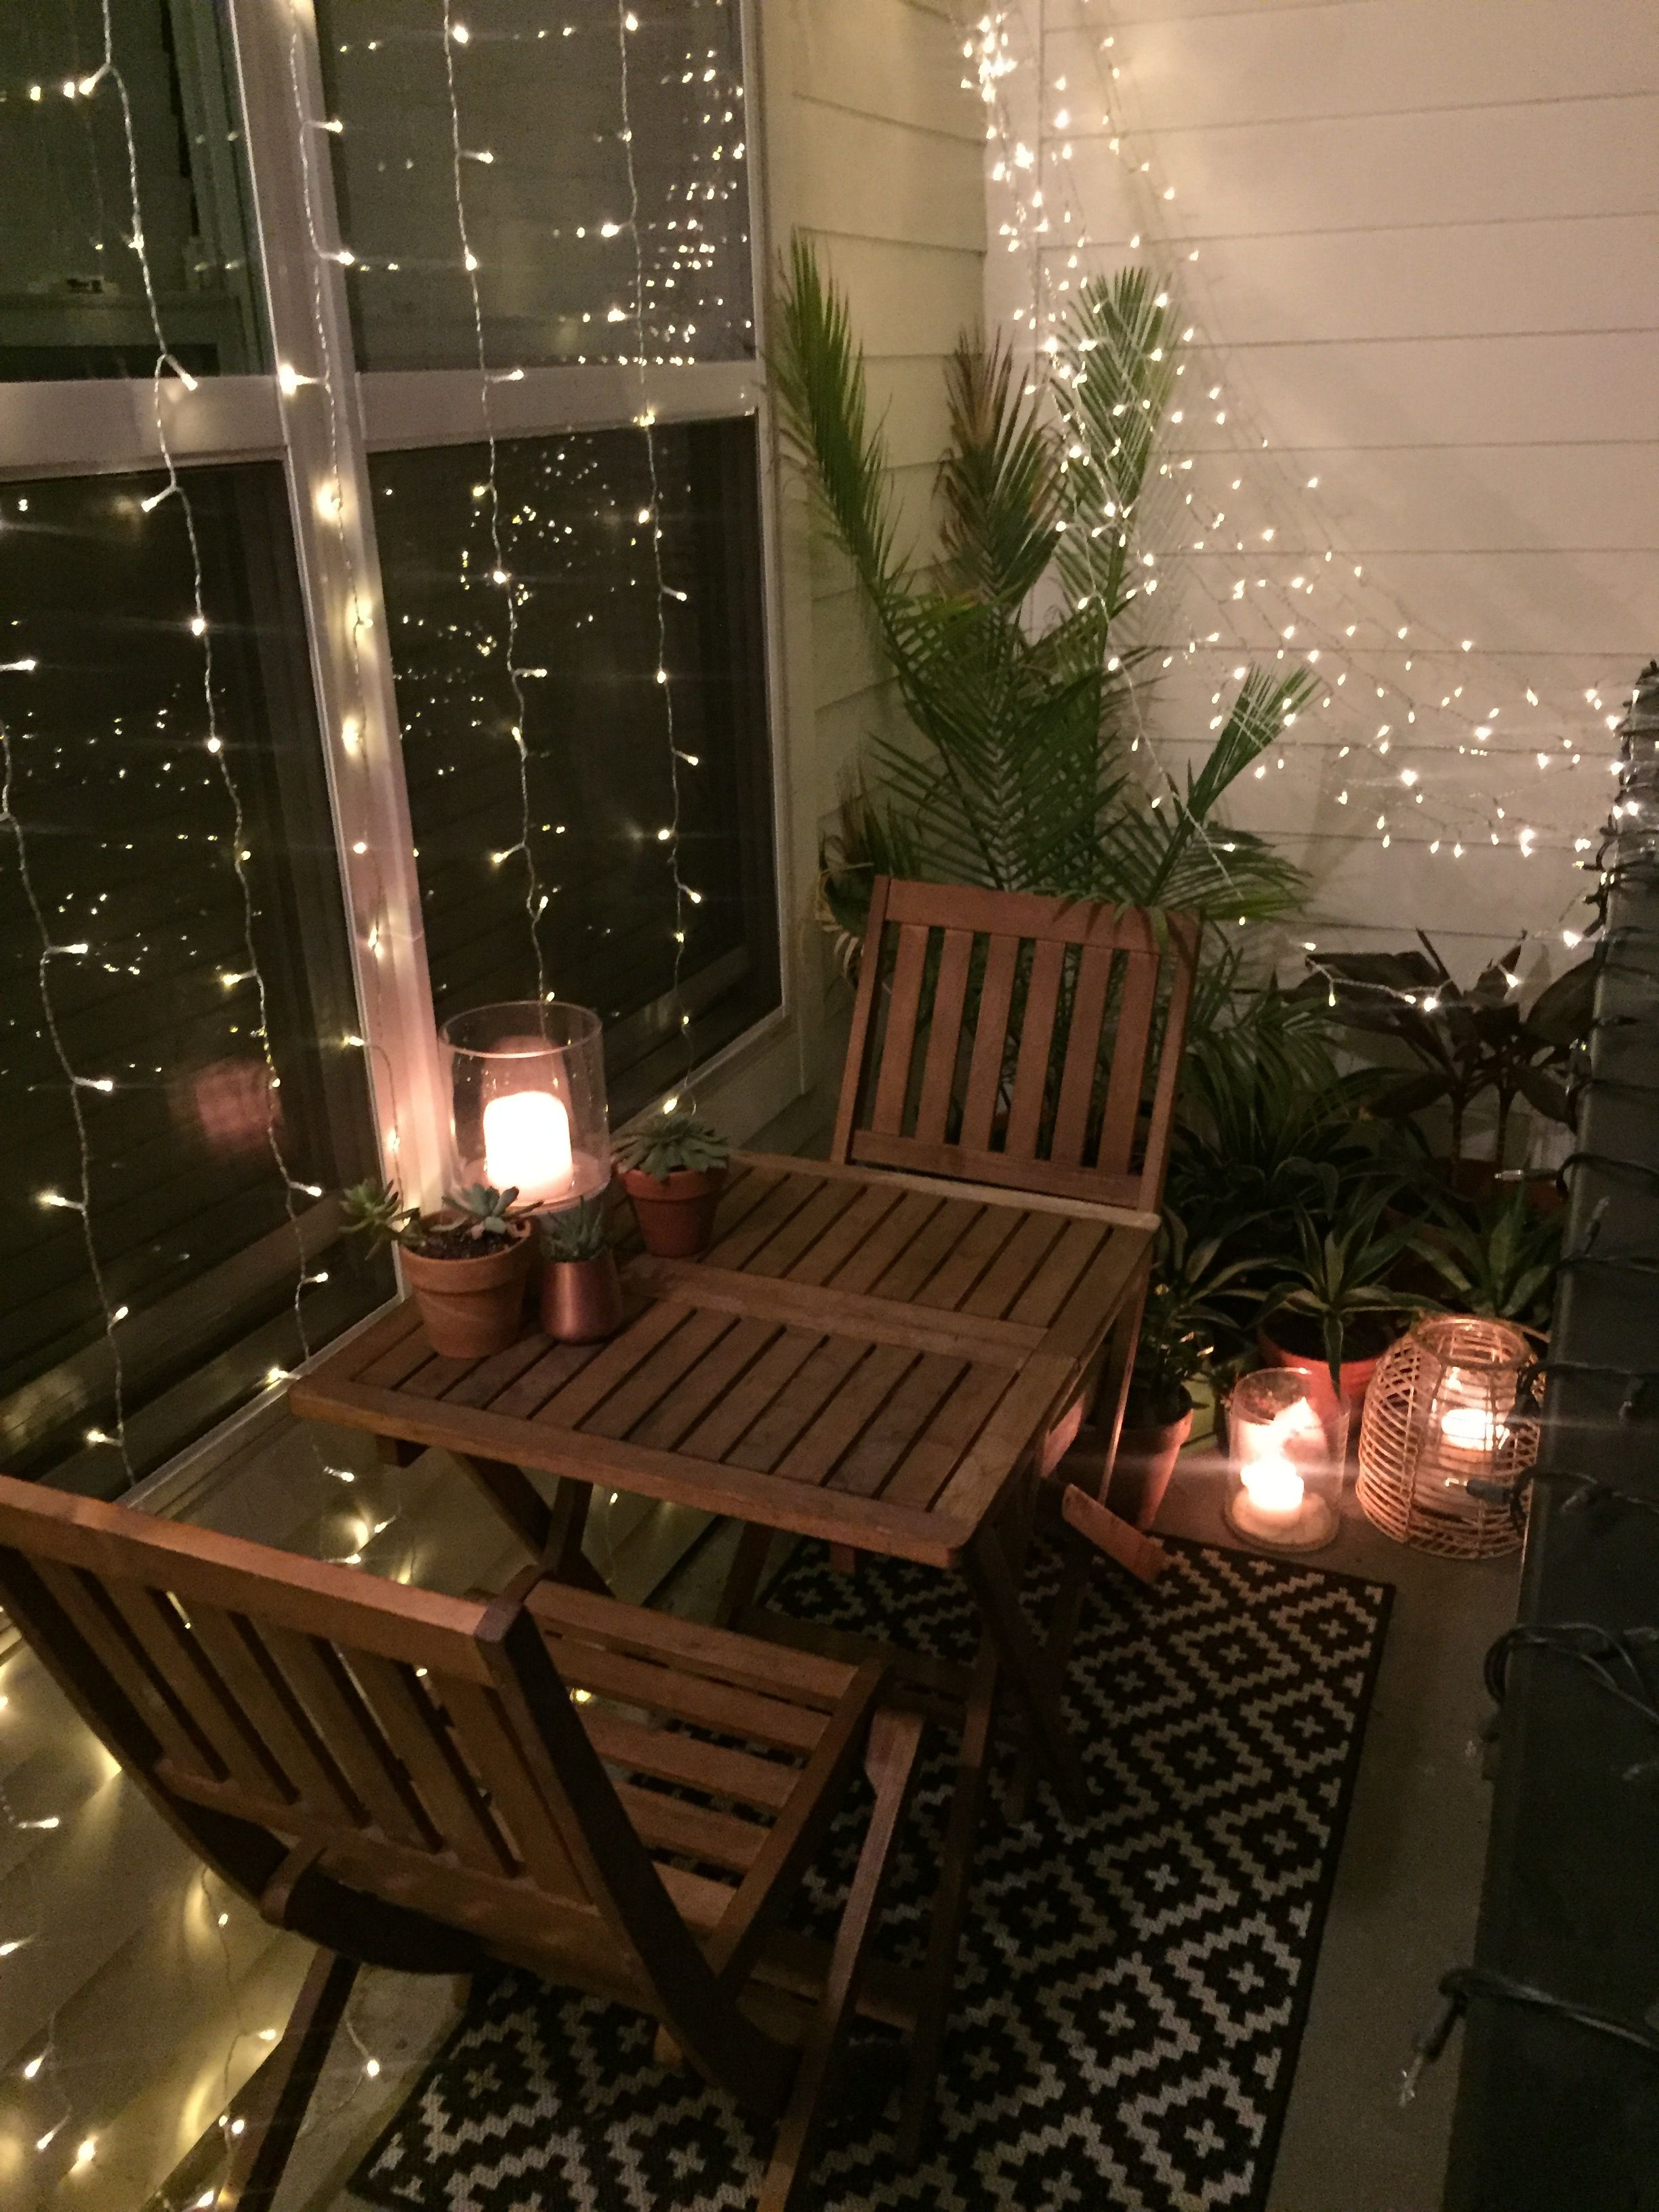 Apartment Balcony Christmas Lights  Pin by Sloansayswhat on Small Apartment Balcony Decor and